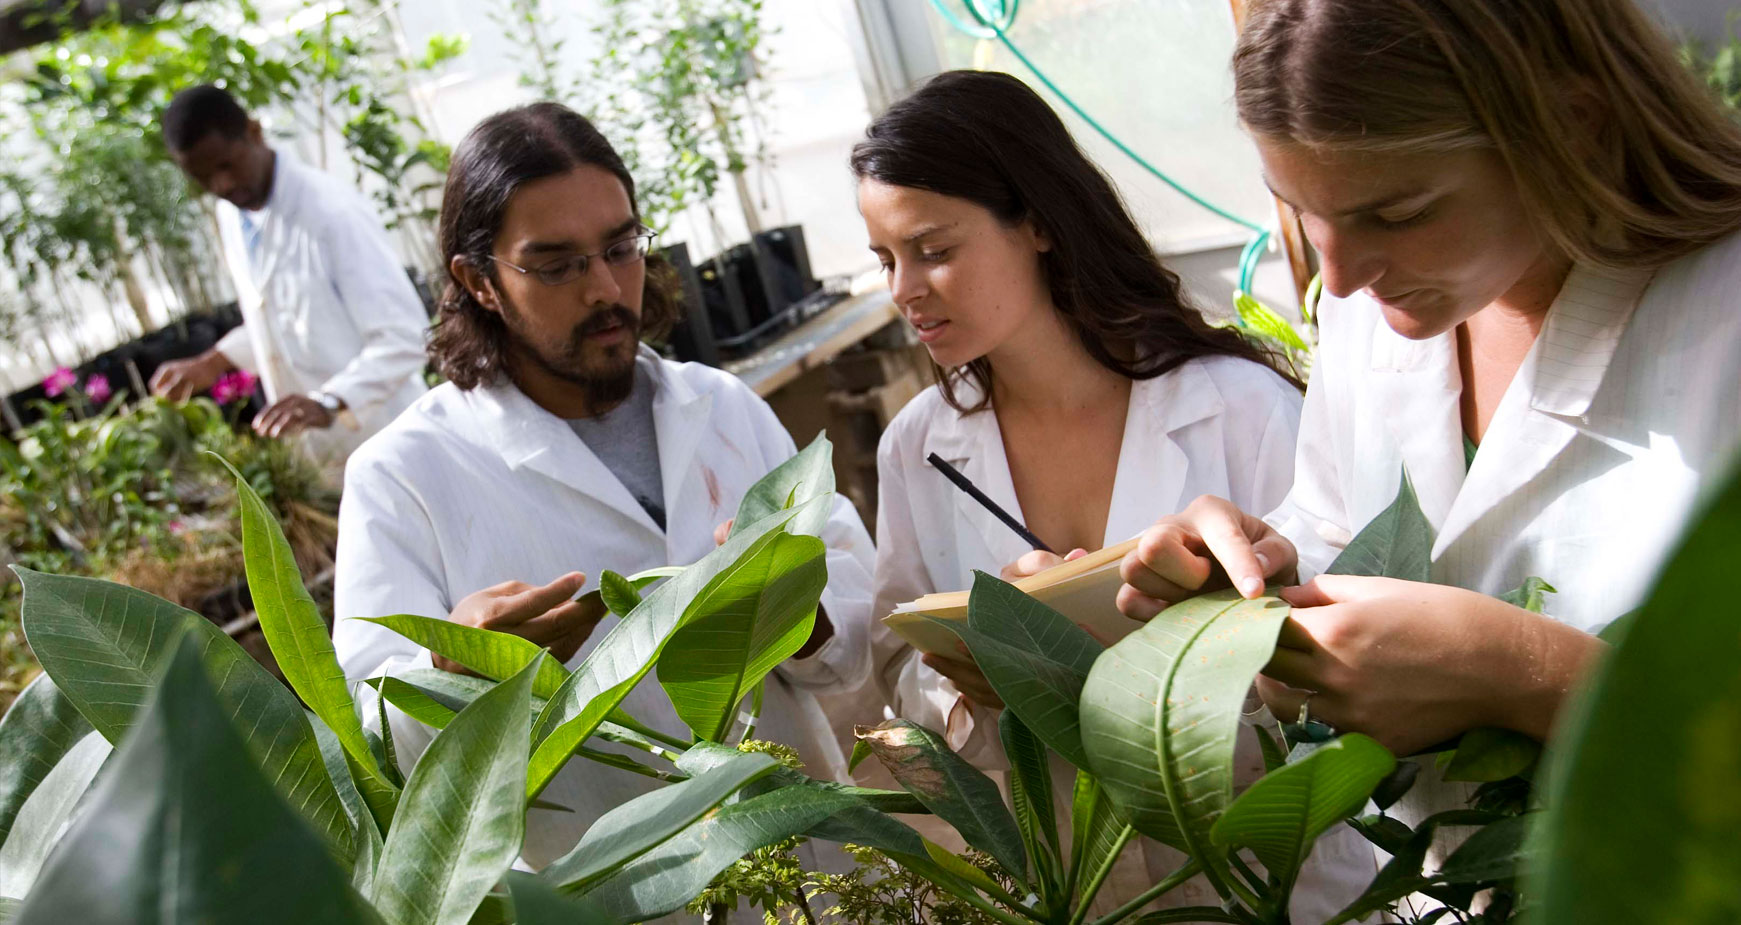 botany students in the lab